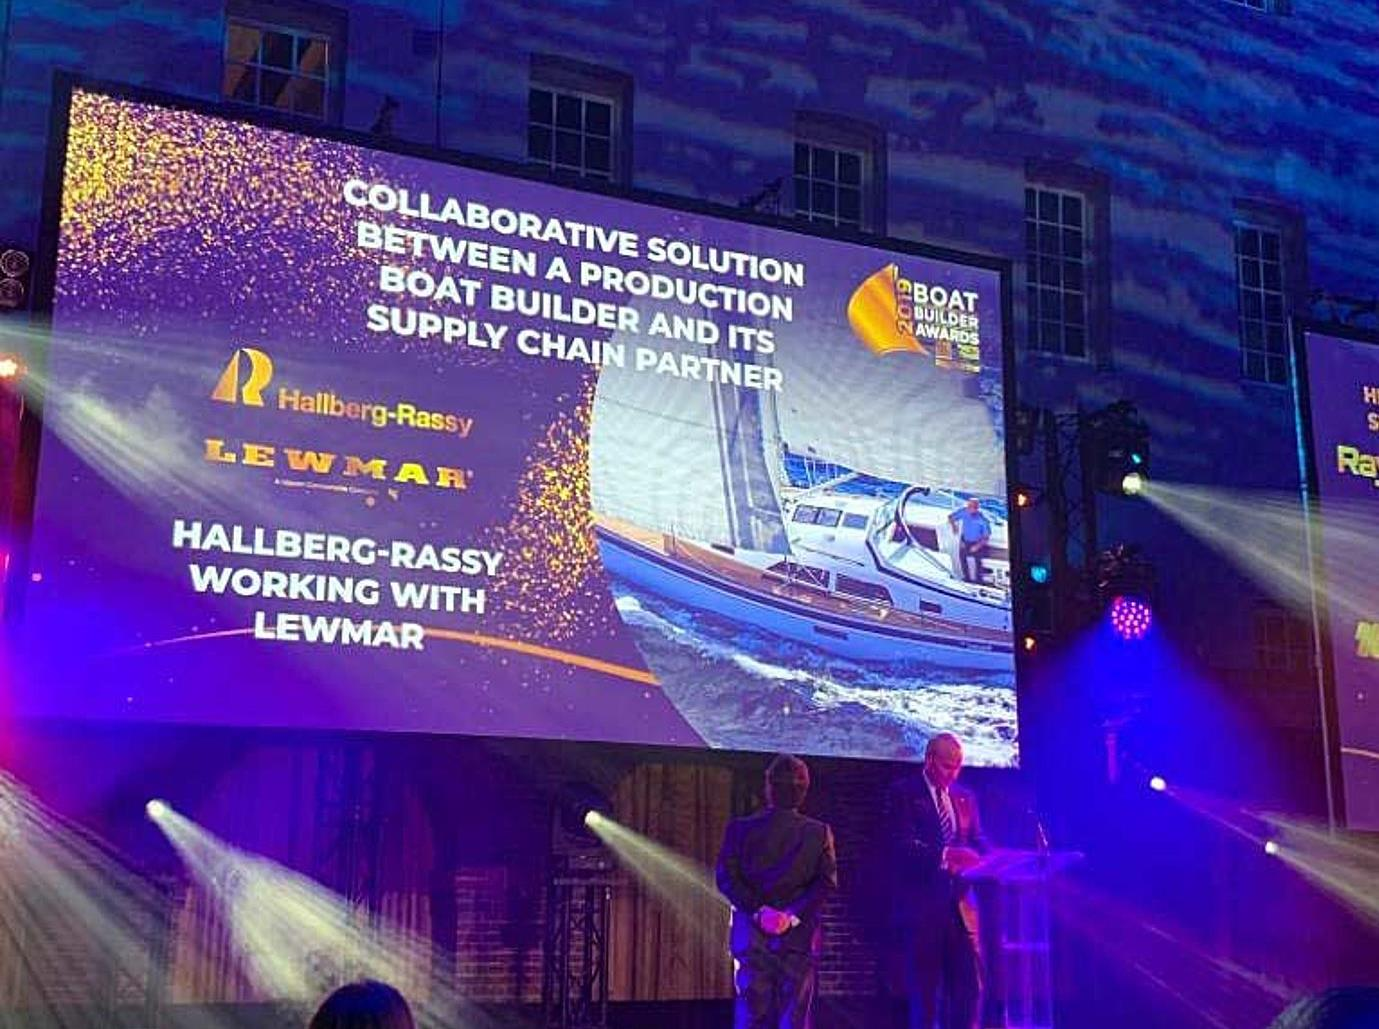 Hallberg-Rassy received Honourable Mention at Boat Builder Awards